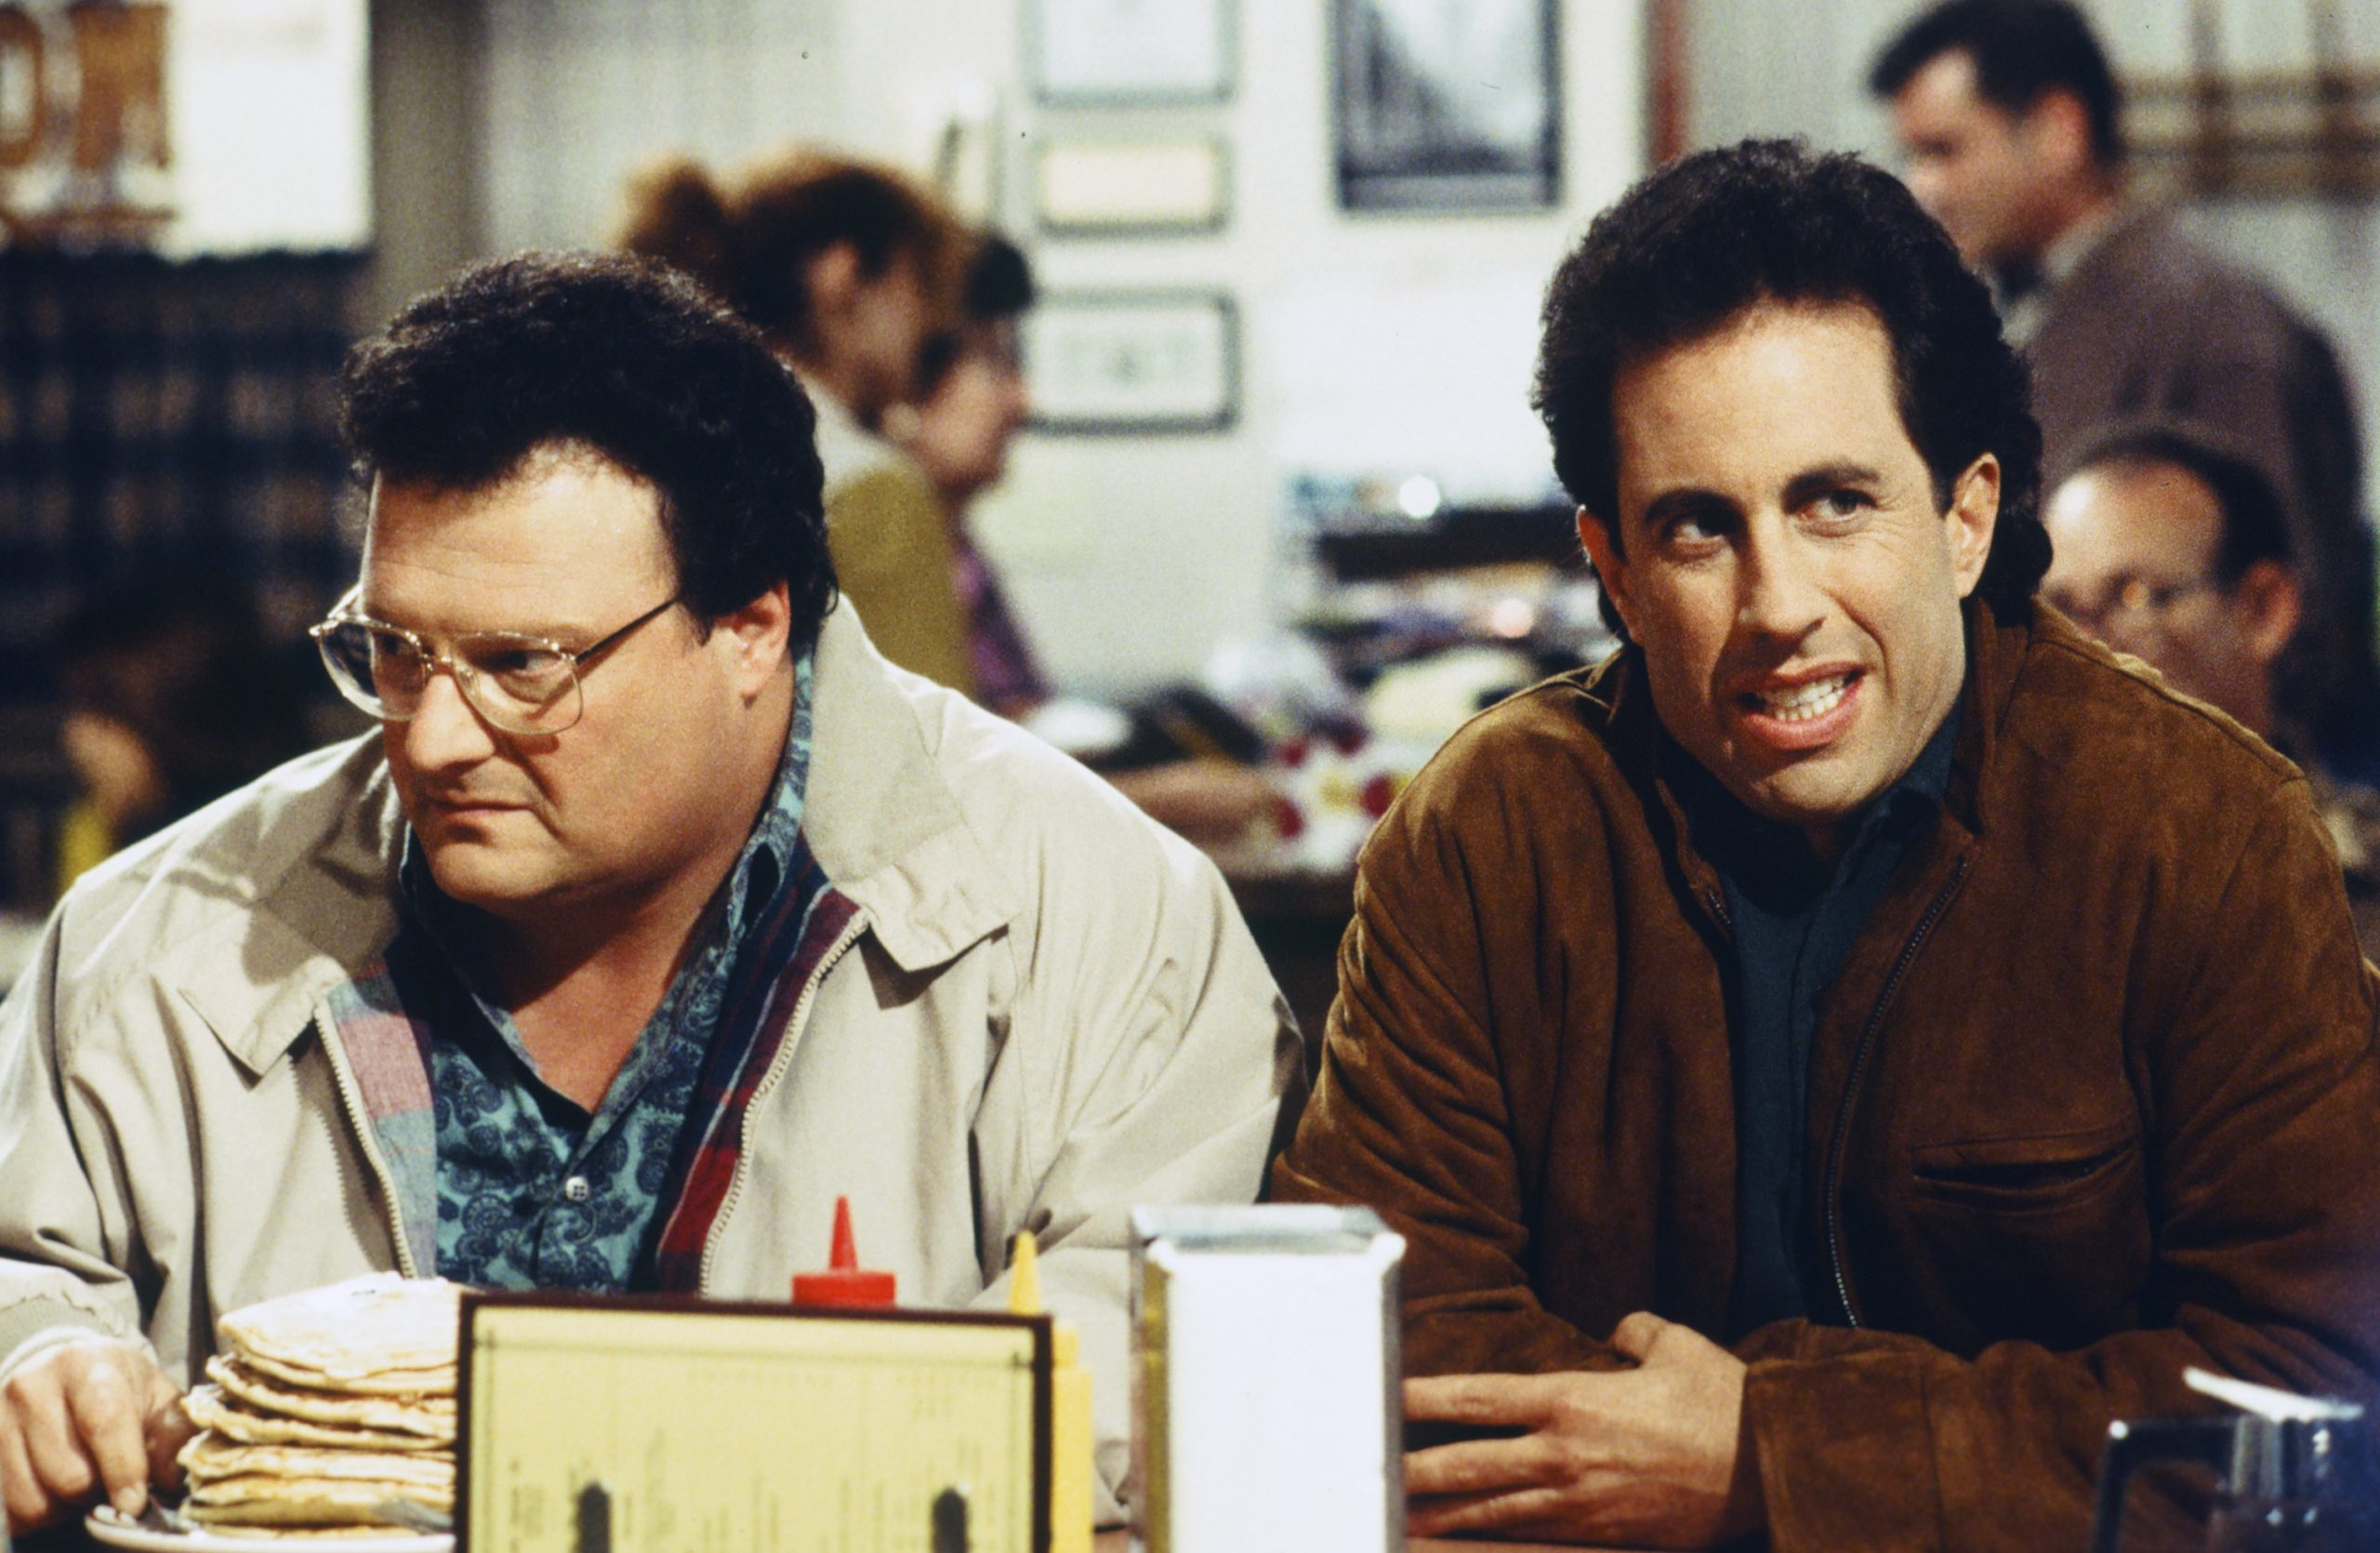 Seinfeld and Newman